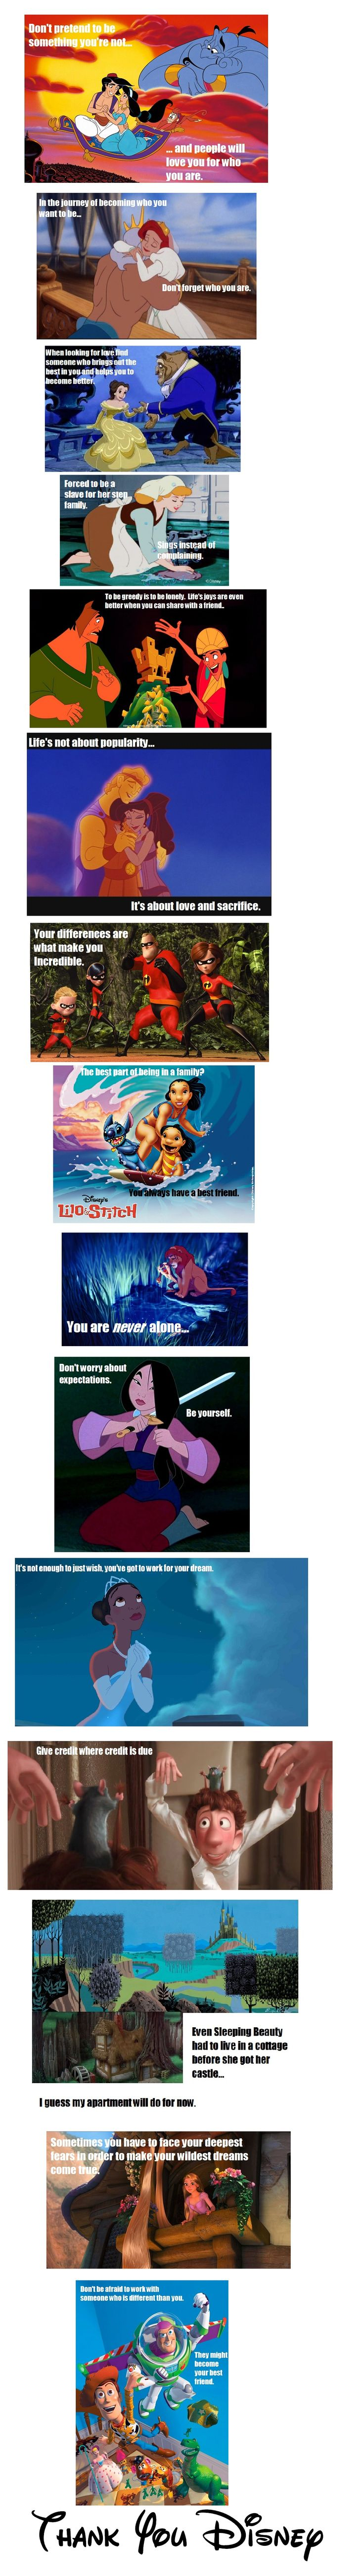 Life Lessons from Disney. Work out your problems, dont give up when you face hard times!